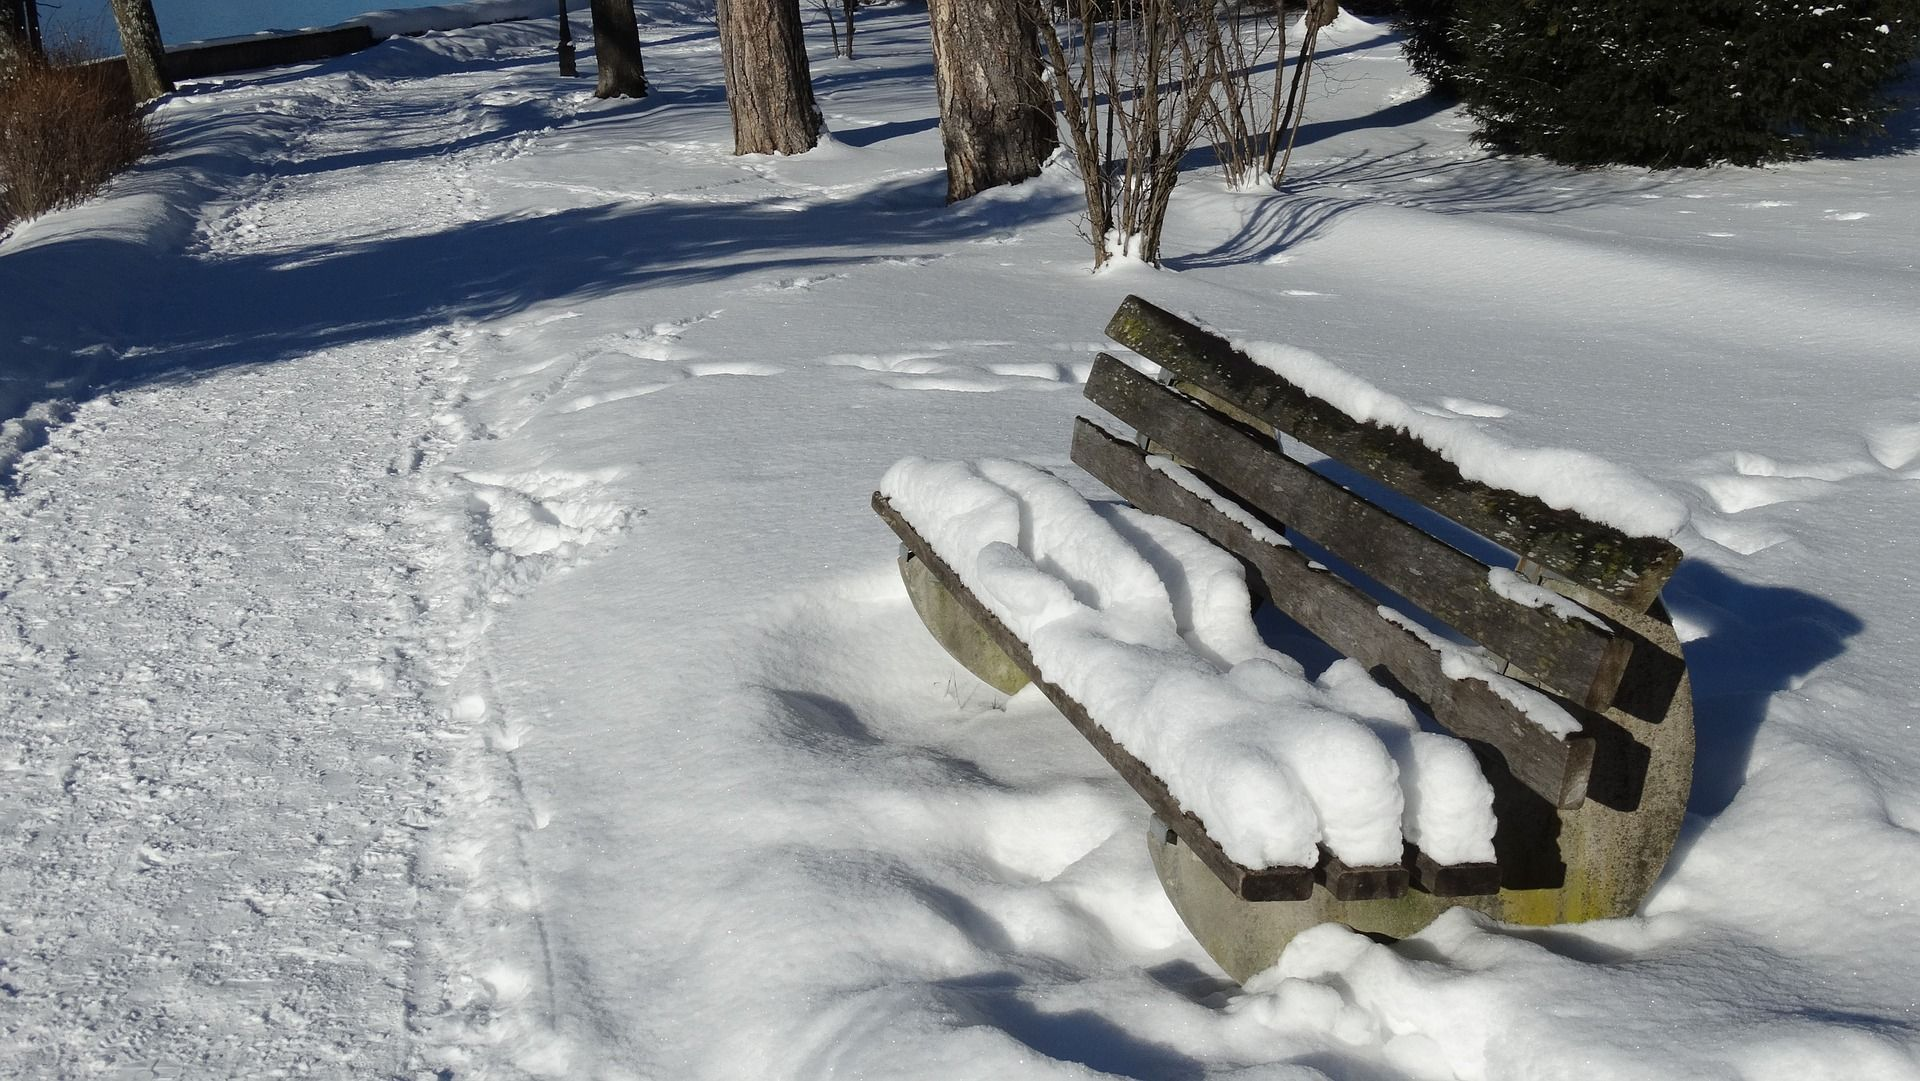 park-bench-1210368_1920